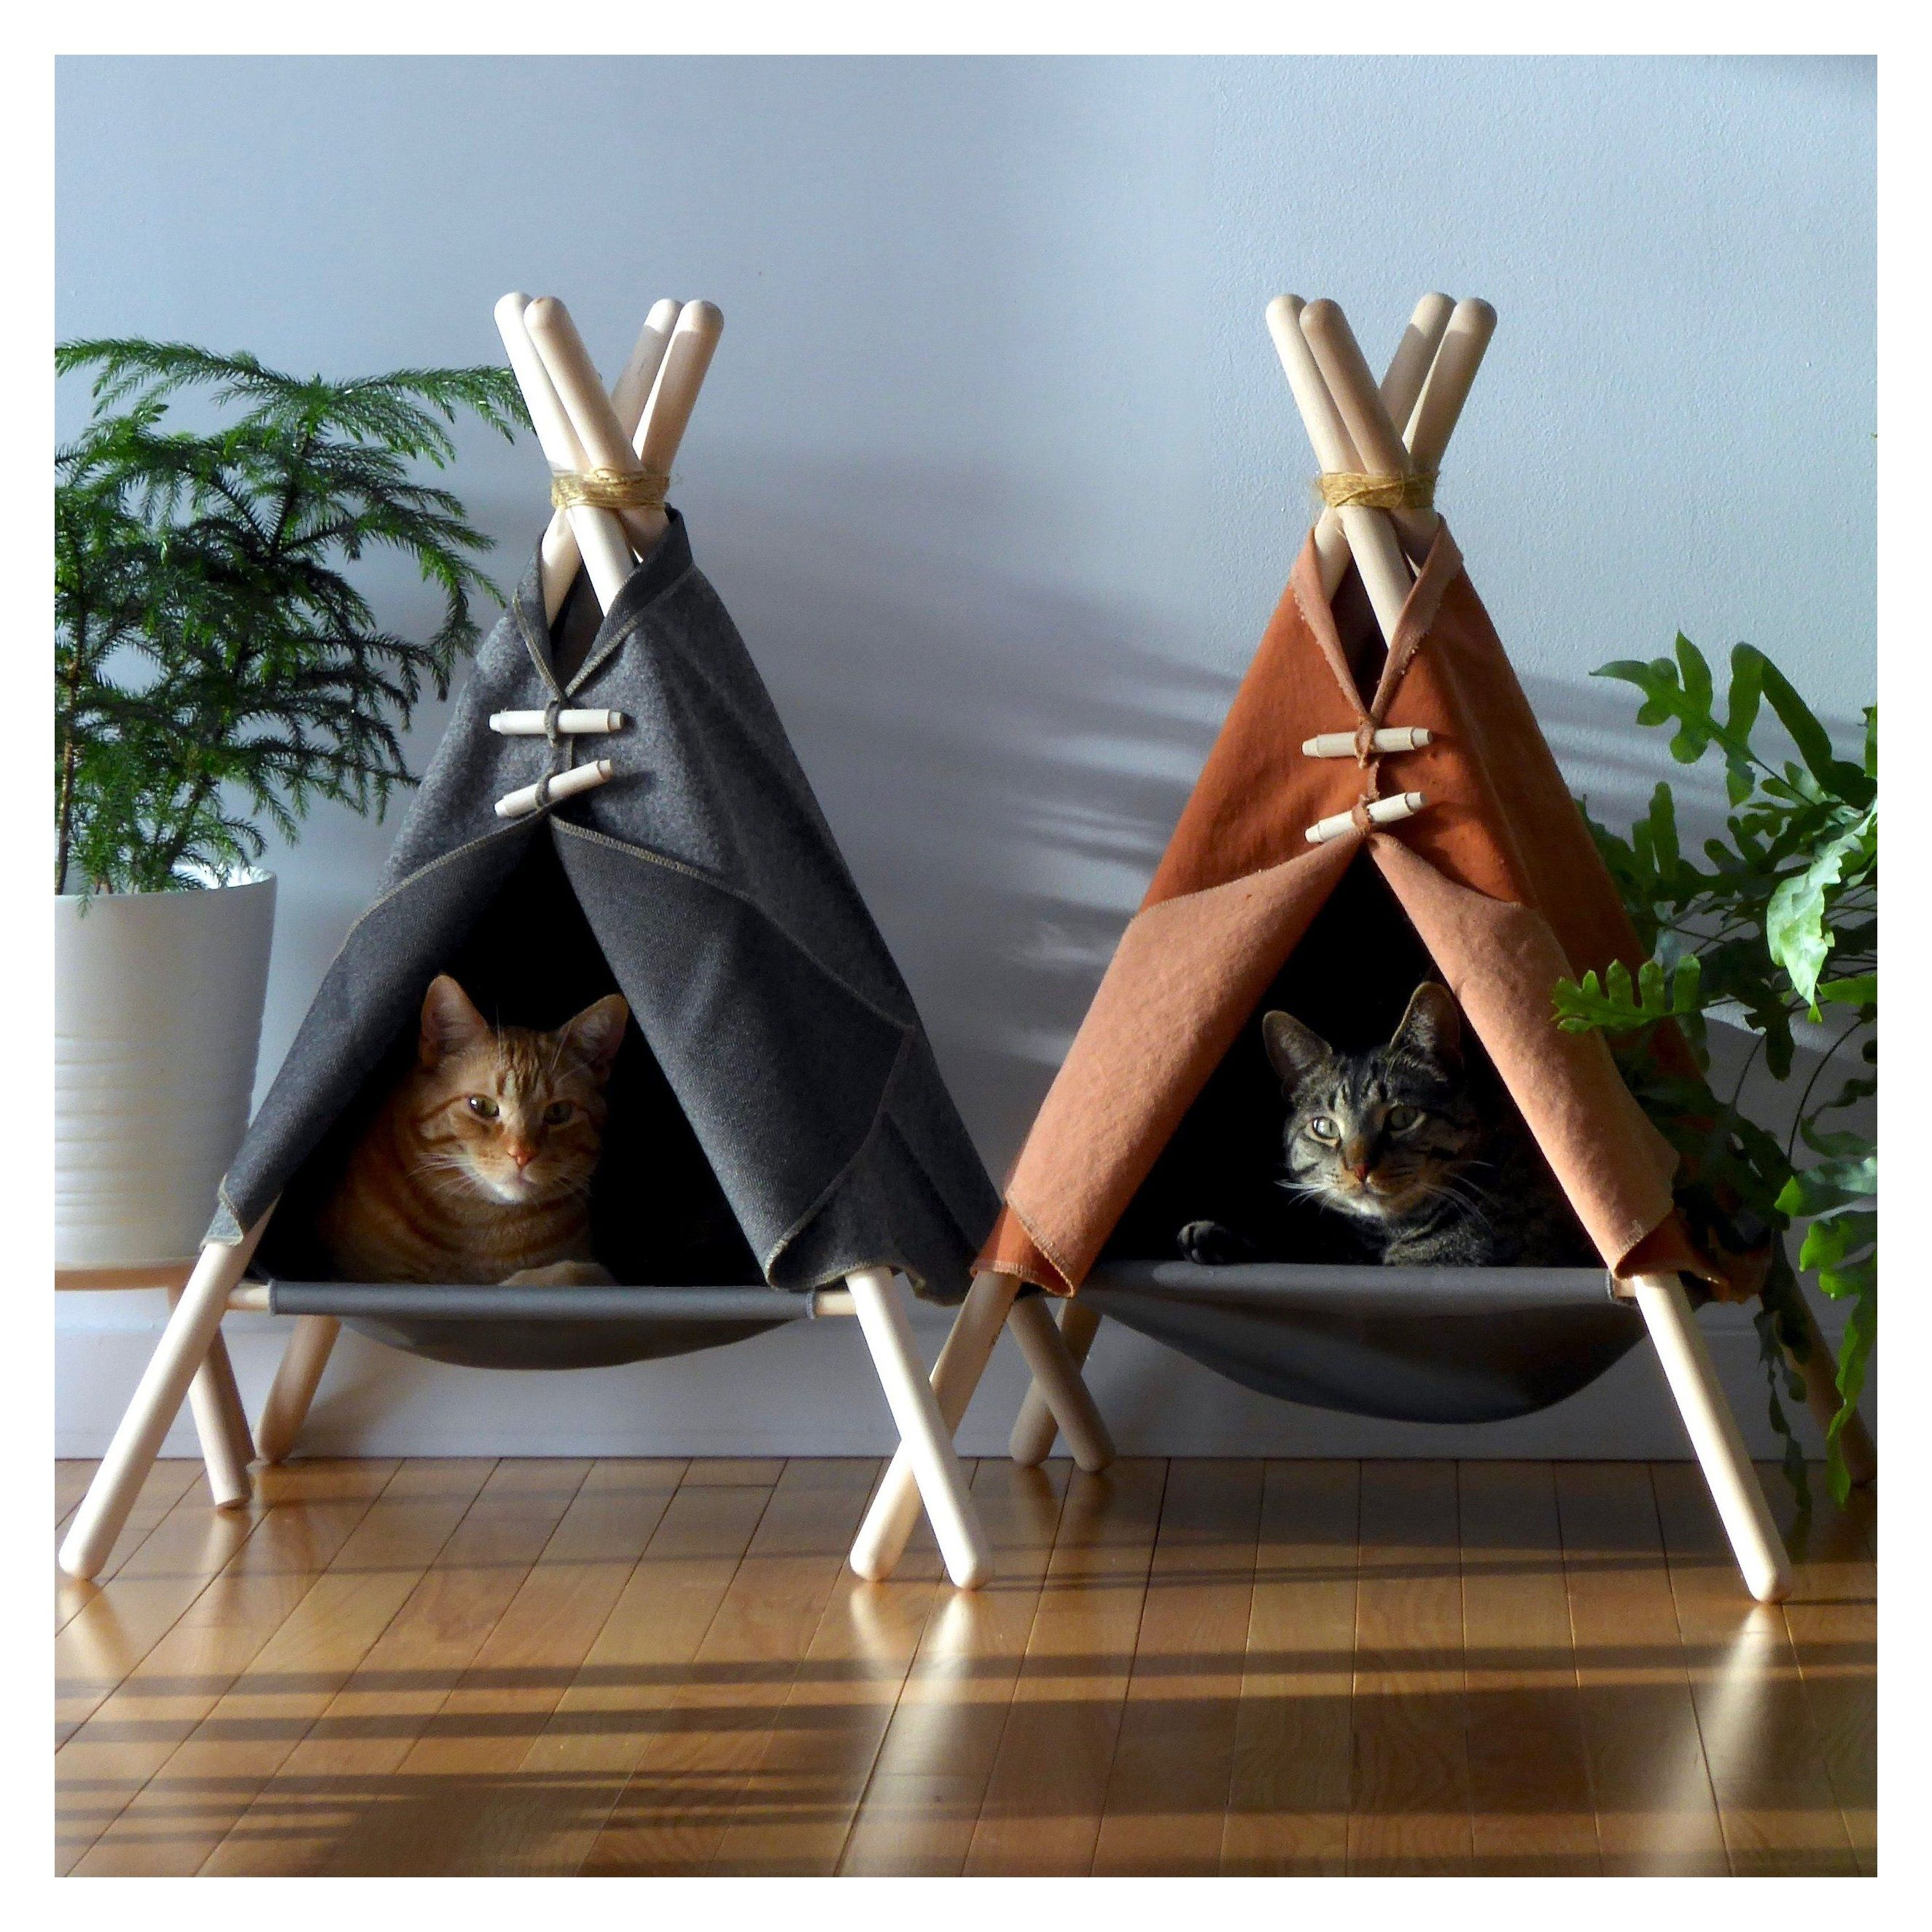 Adventure Tent cat bed The Adventure Tent is a super fun